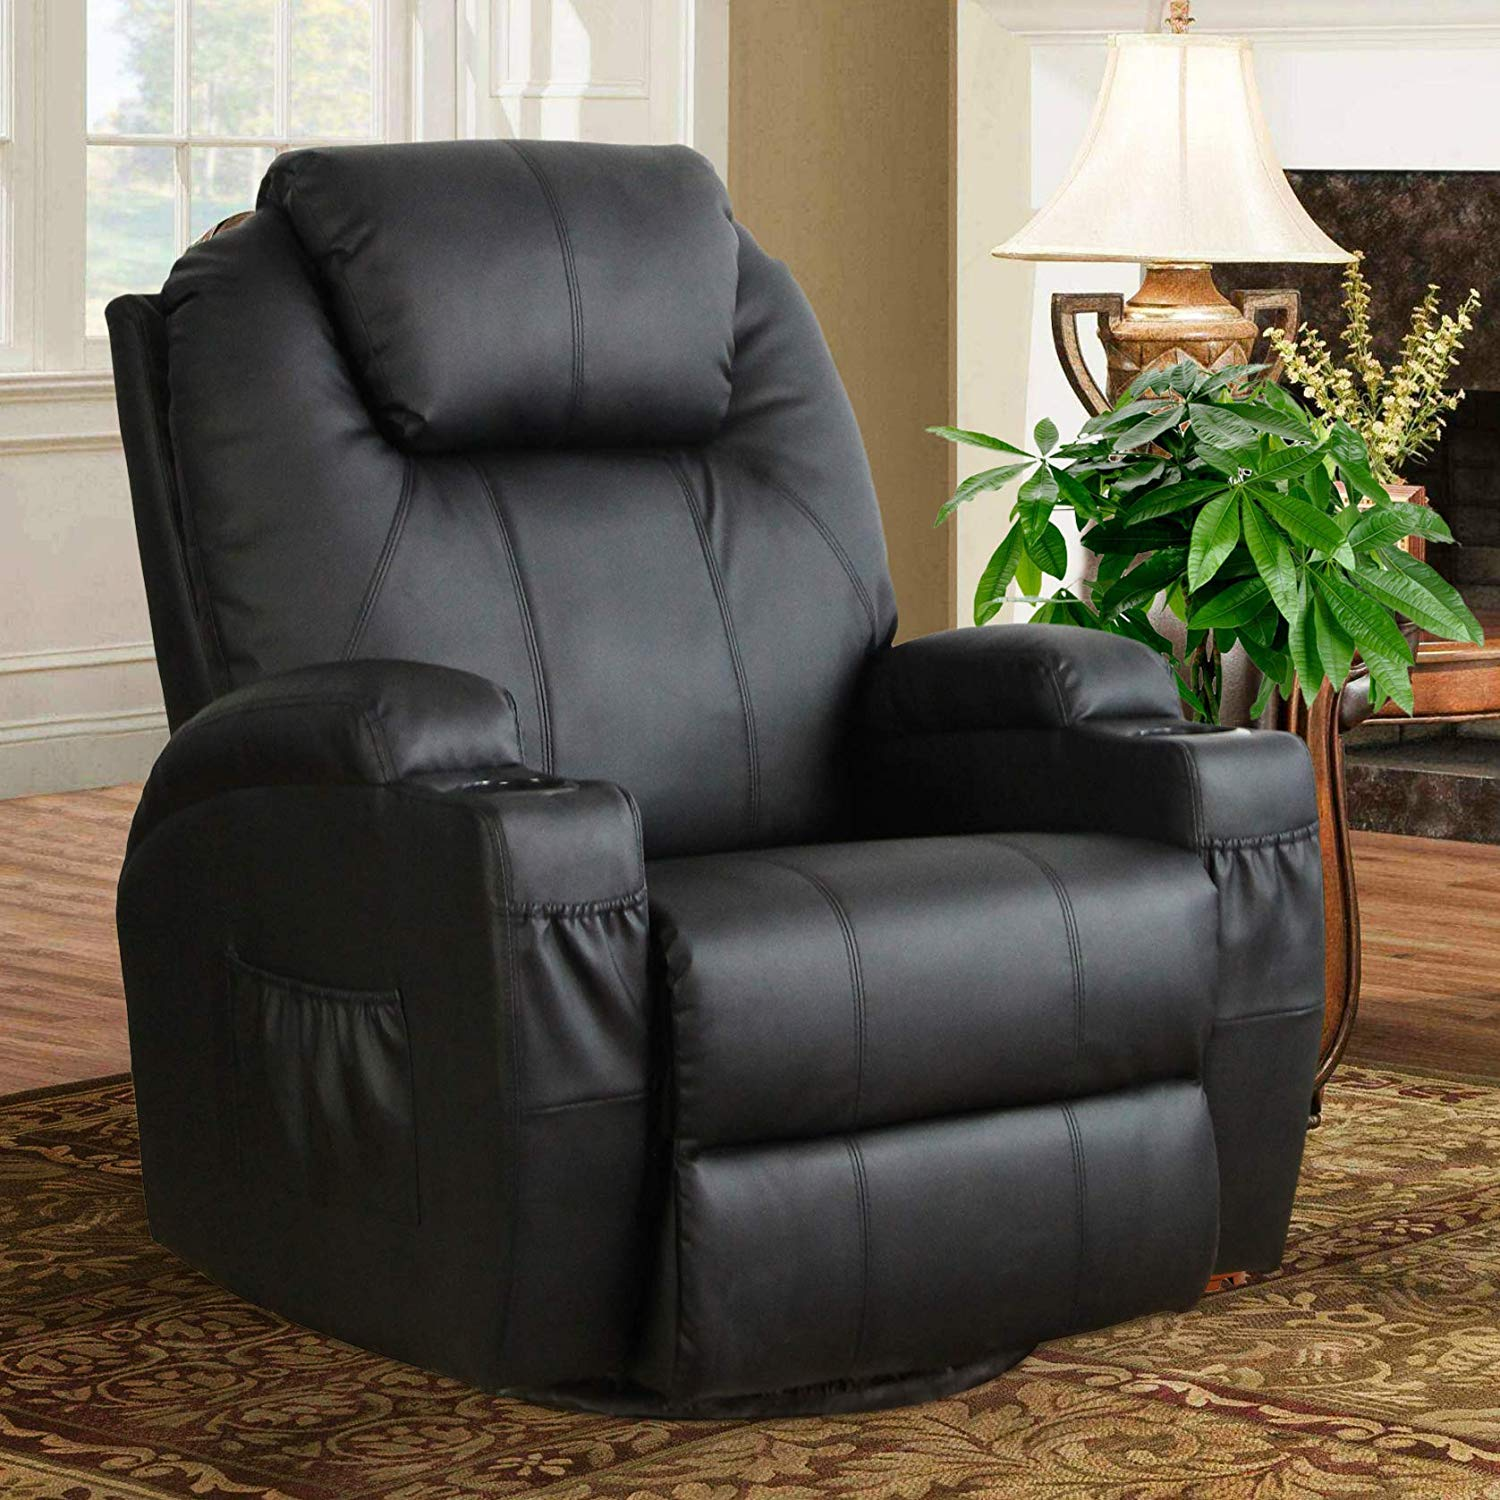 Esright Heated Massage Recliner 360 Degree Chair